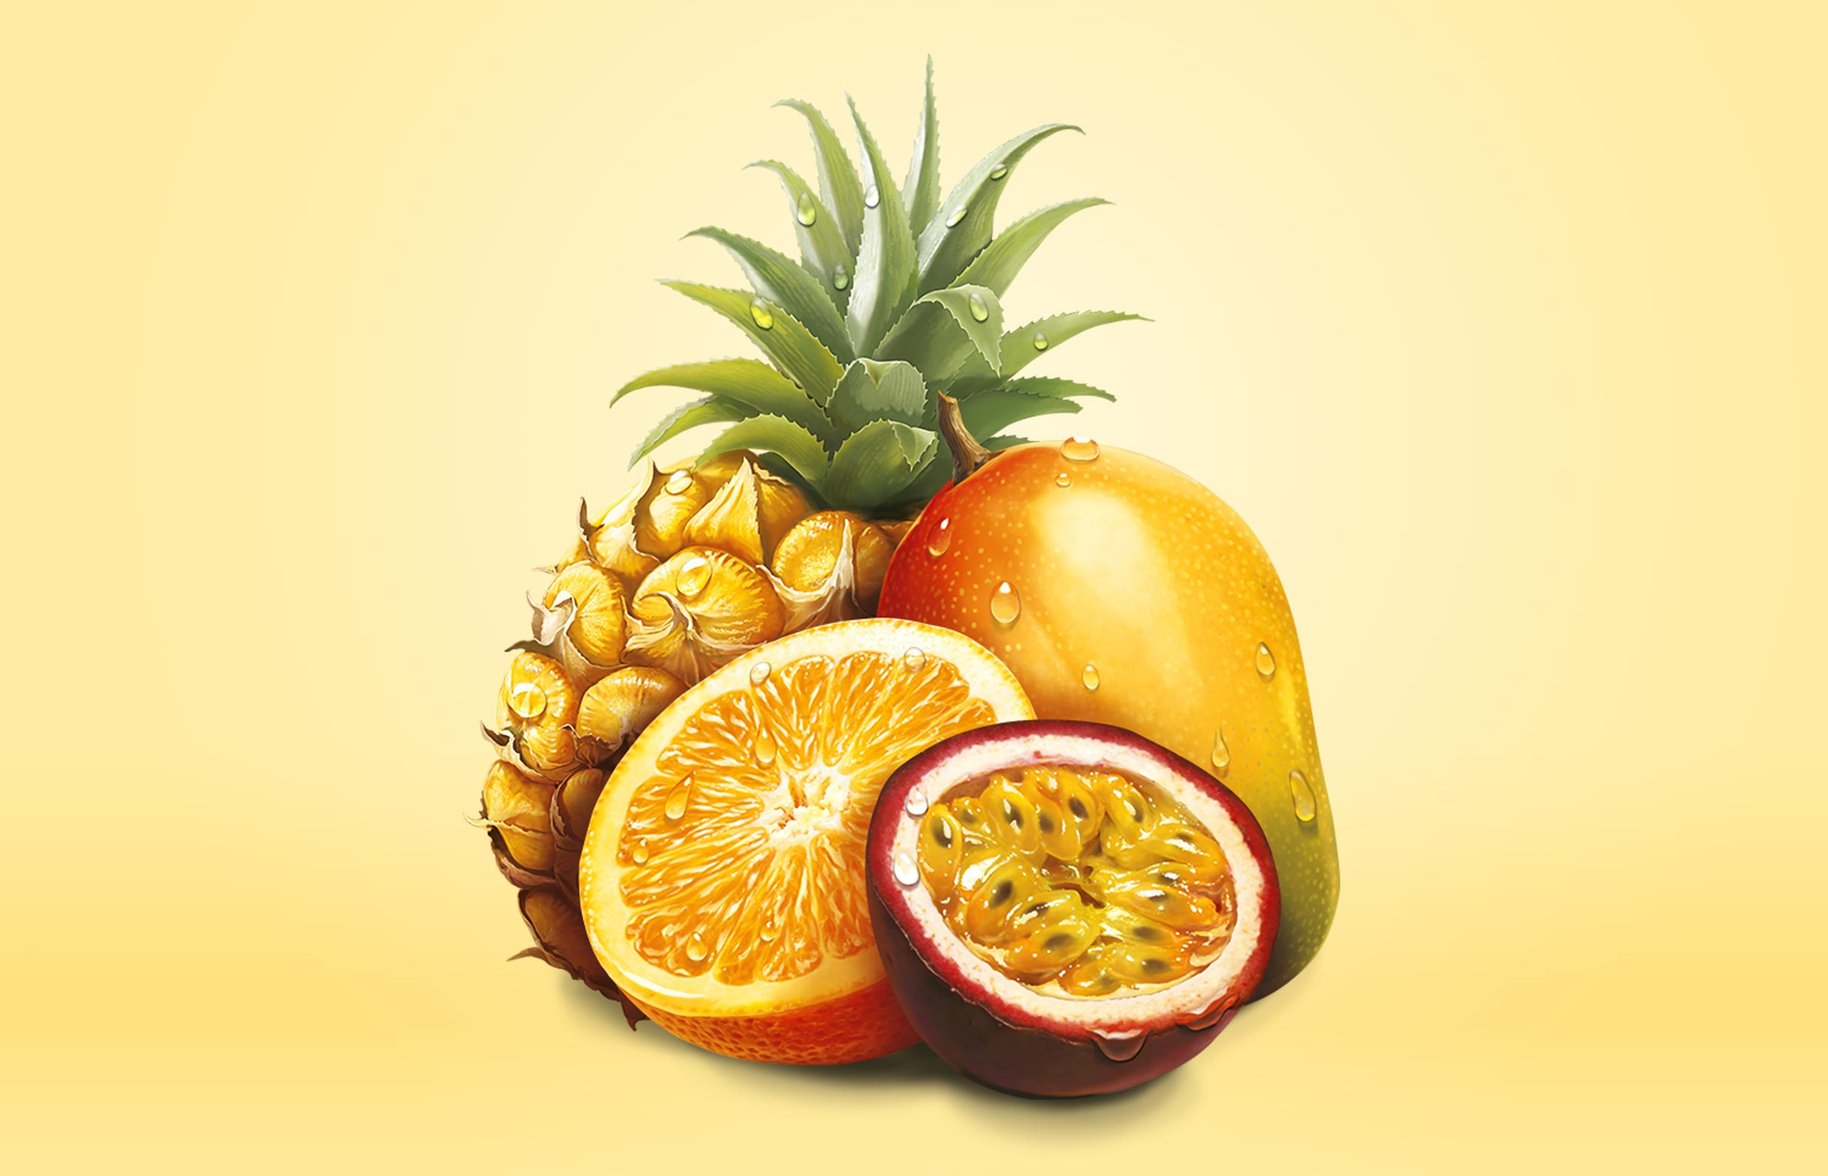 Just Juice topical fruit illustration